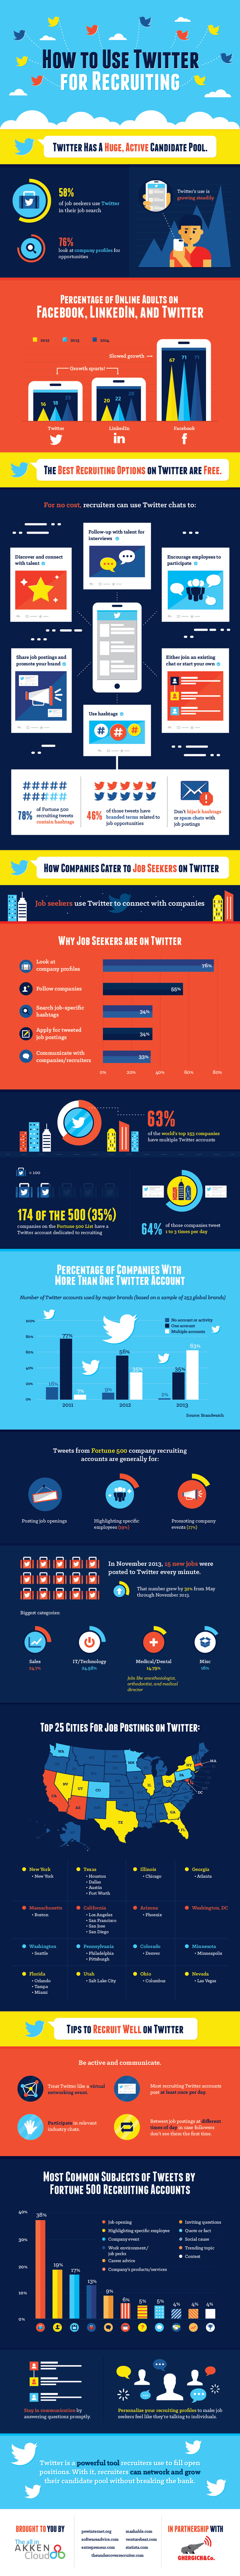 How To Use #Twitter For Recruiting - #infographic